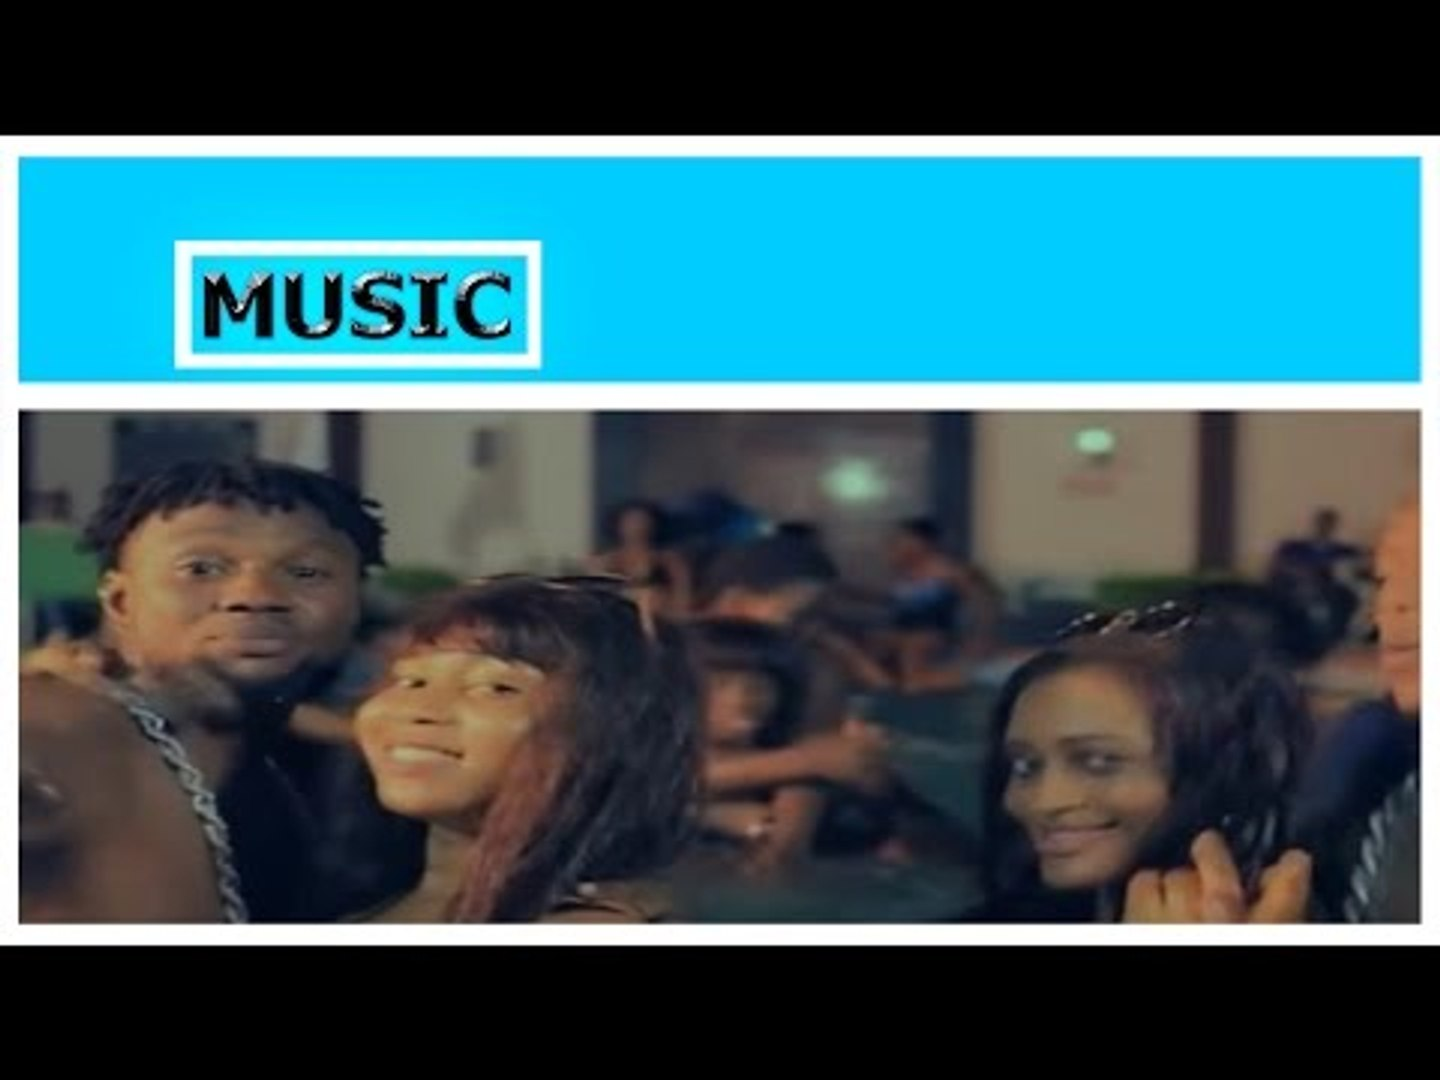 New Nigerian Music 2016 - XSQUAD - BIG BUM BUM (Official Video) AfroBeat 2016 [West African music]